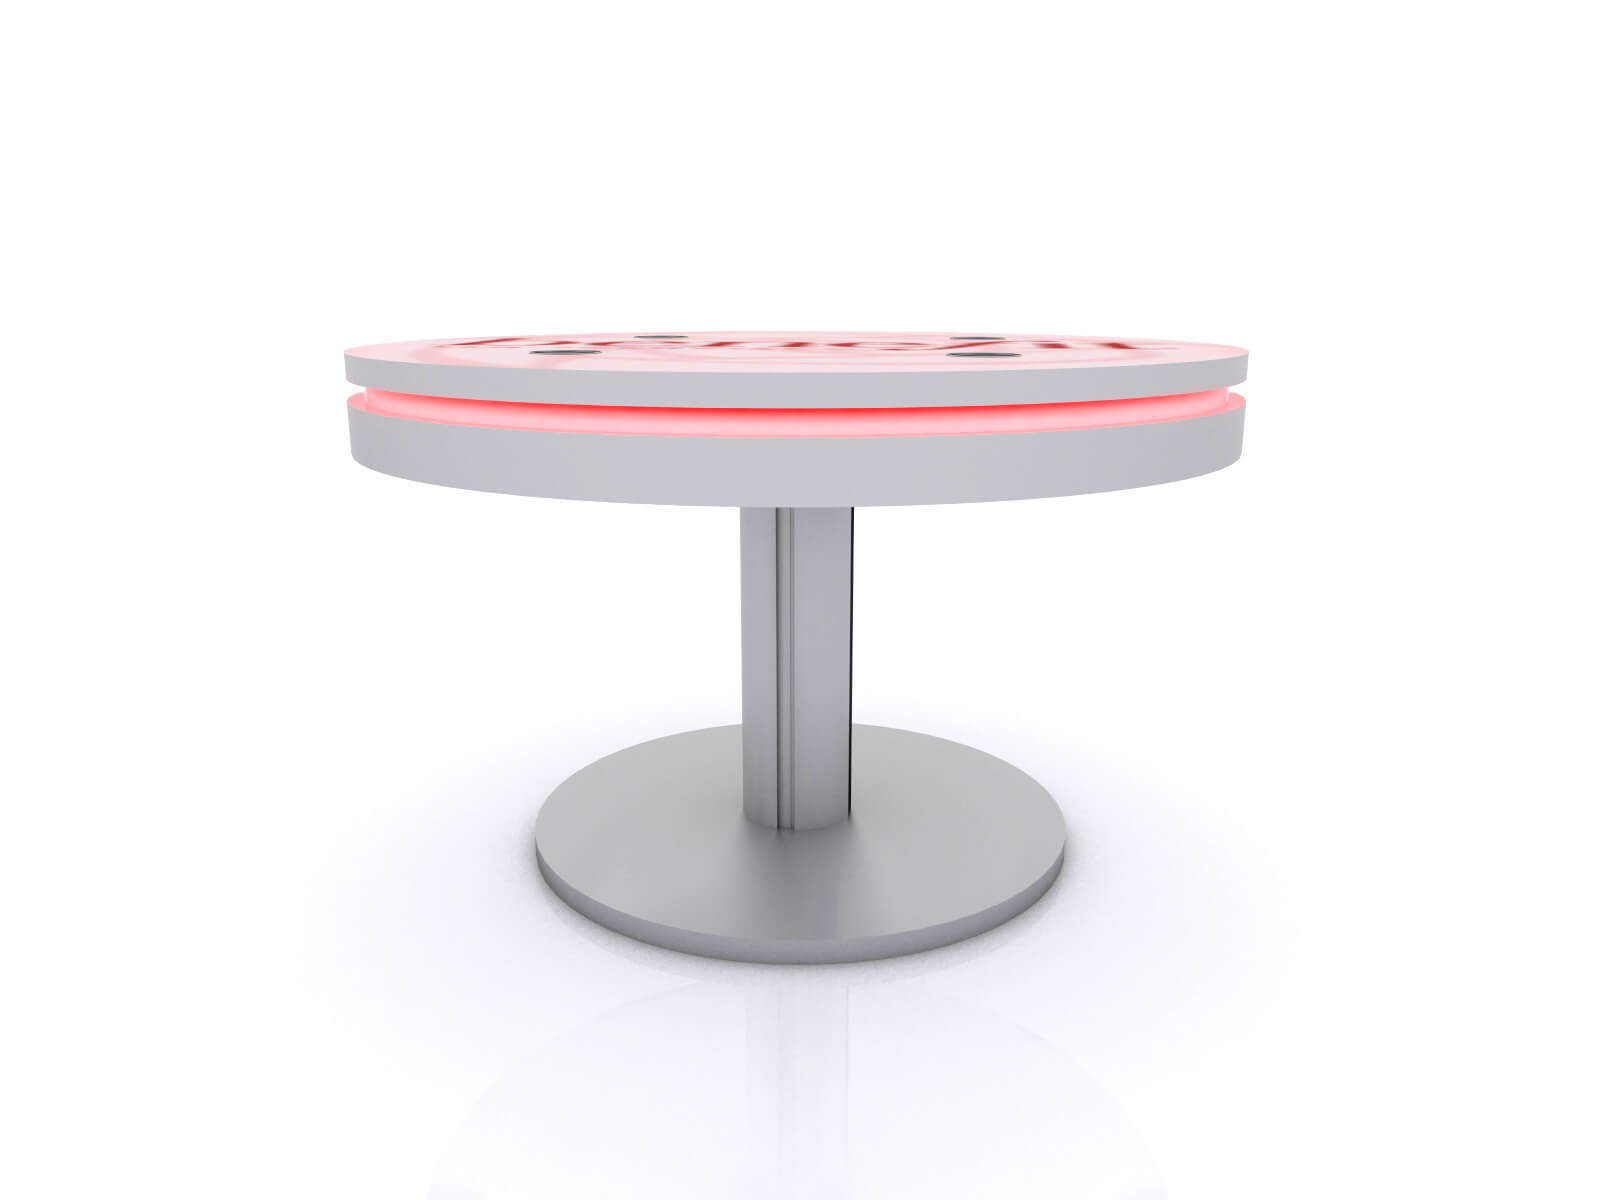 MOD-1452 Trade Show Wireless Charging Station - image 2